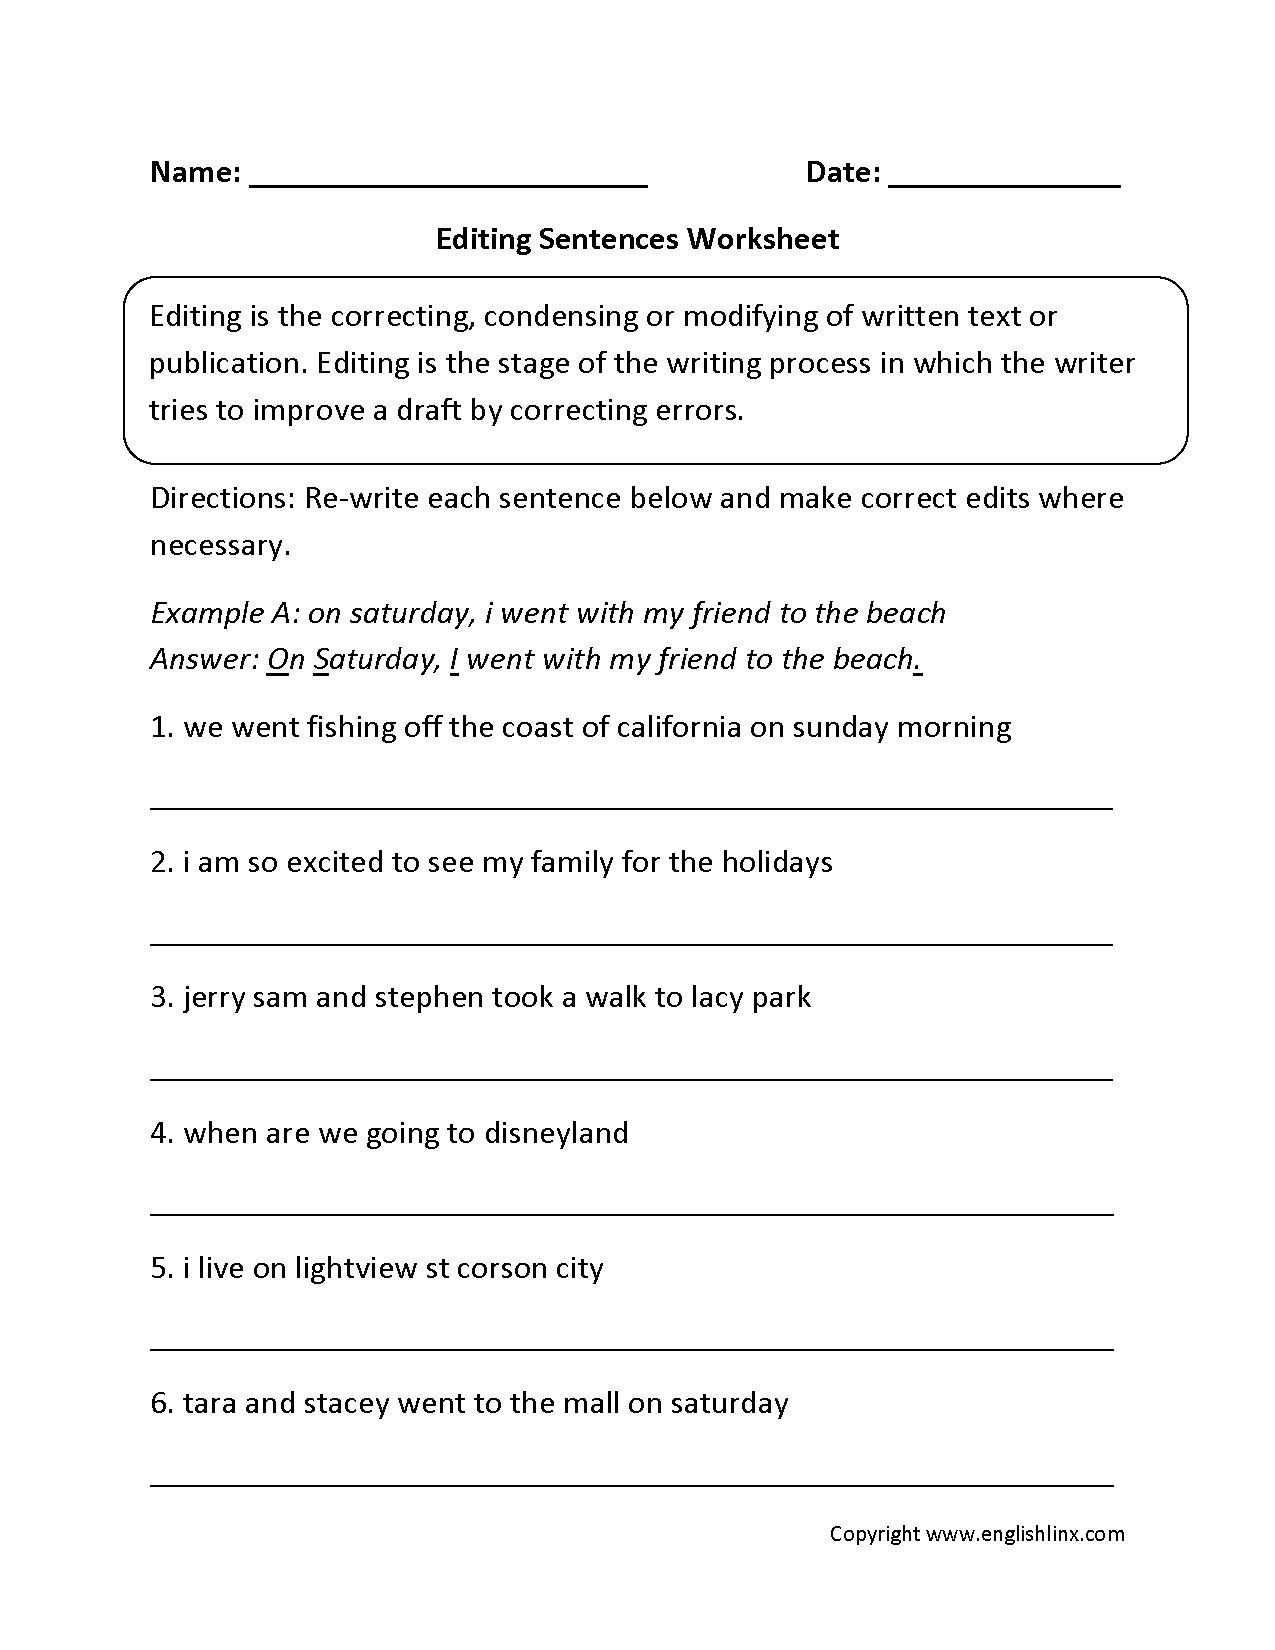 4 Editing Exercises For Class 8 Editing And Reading